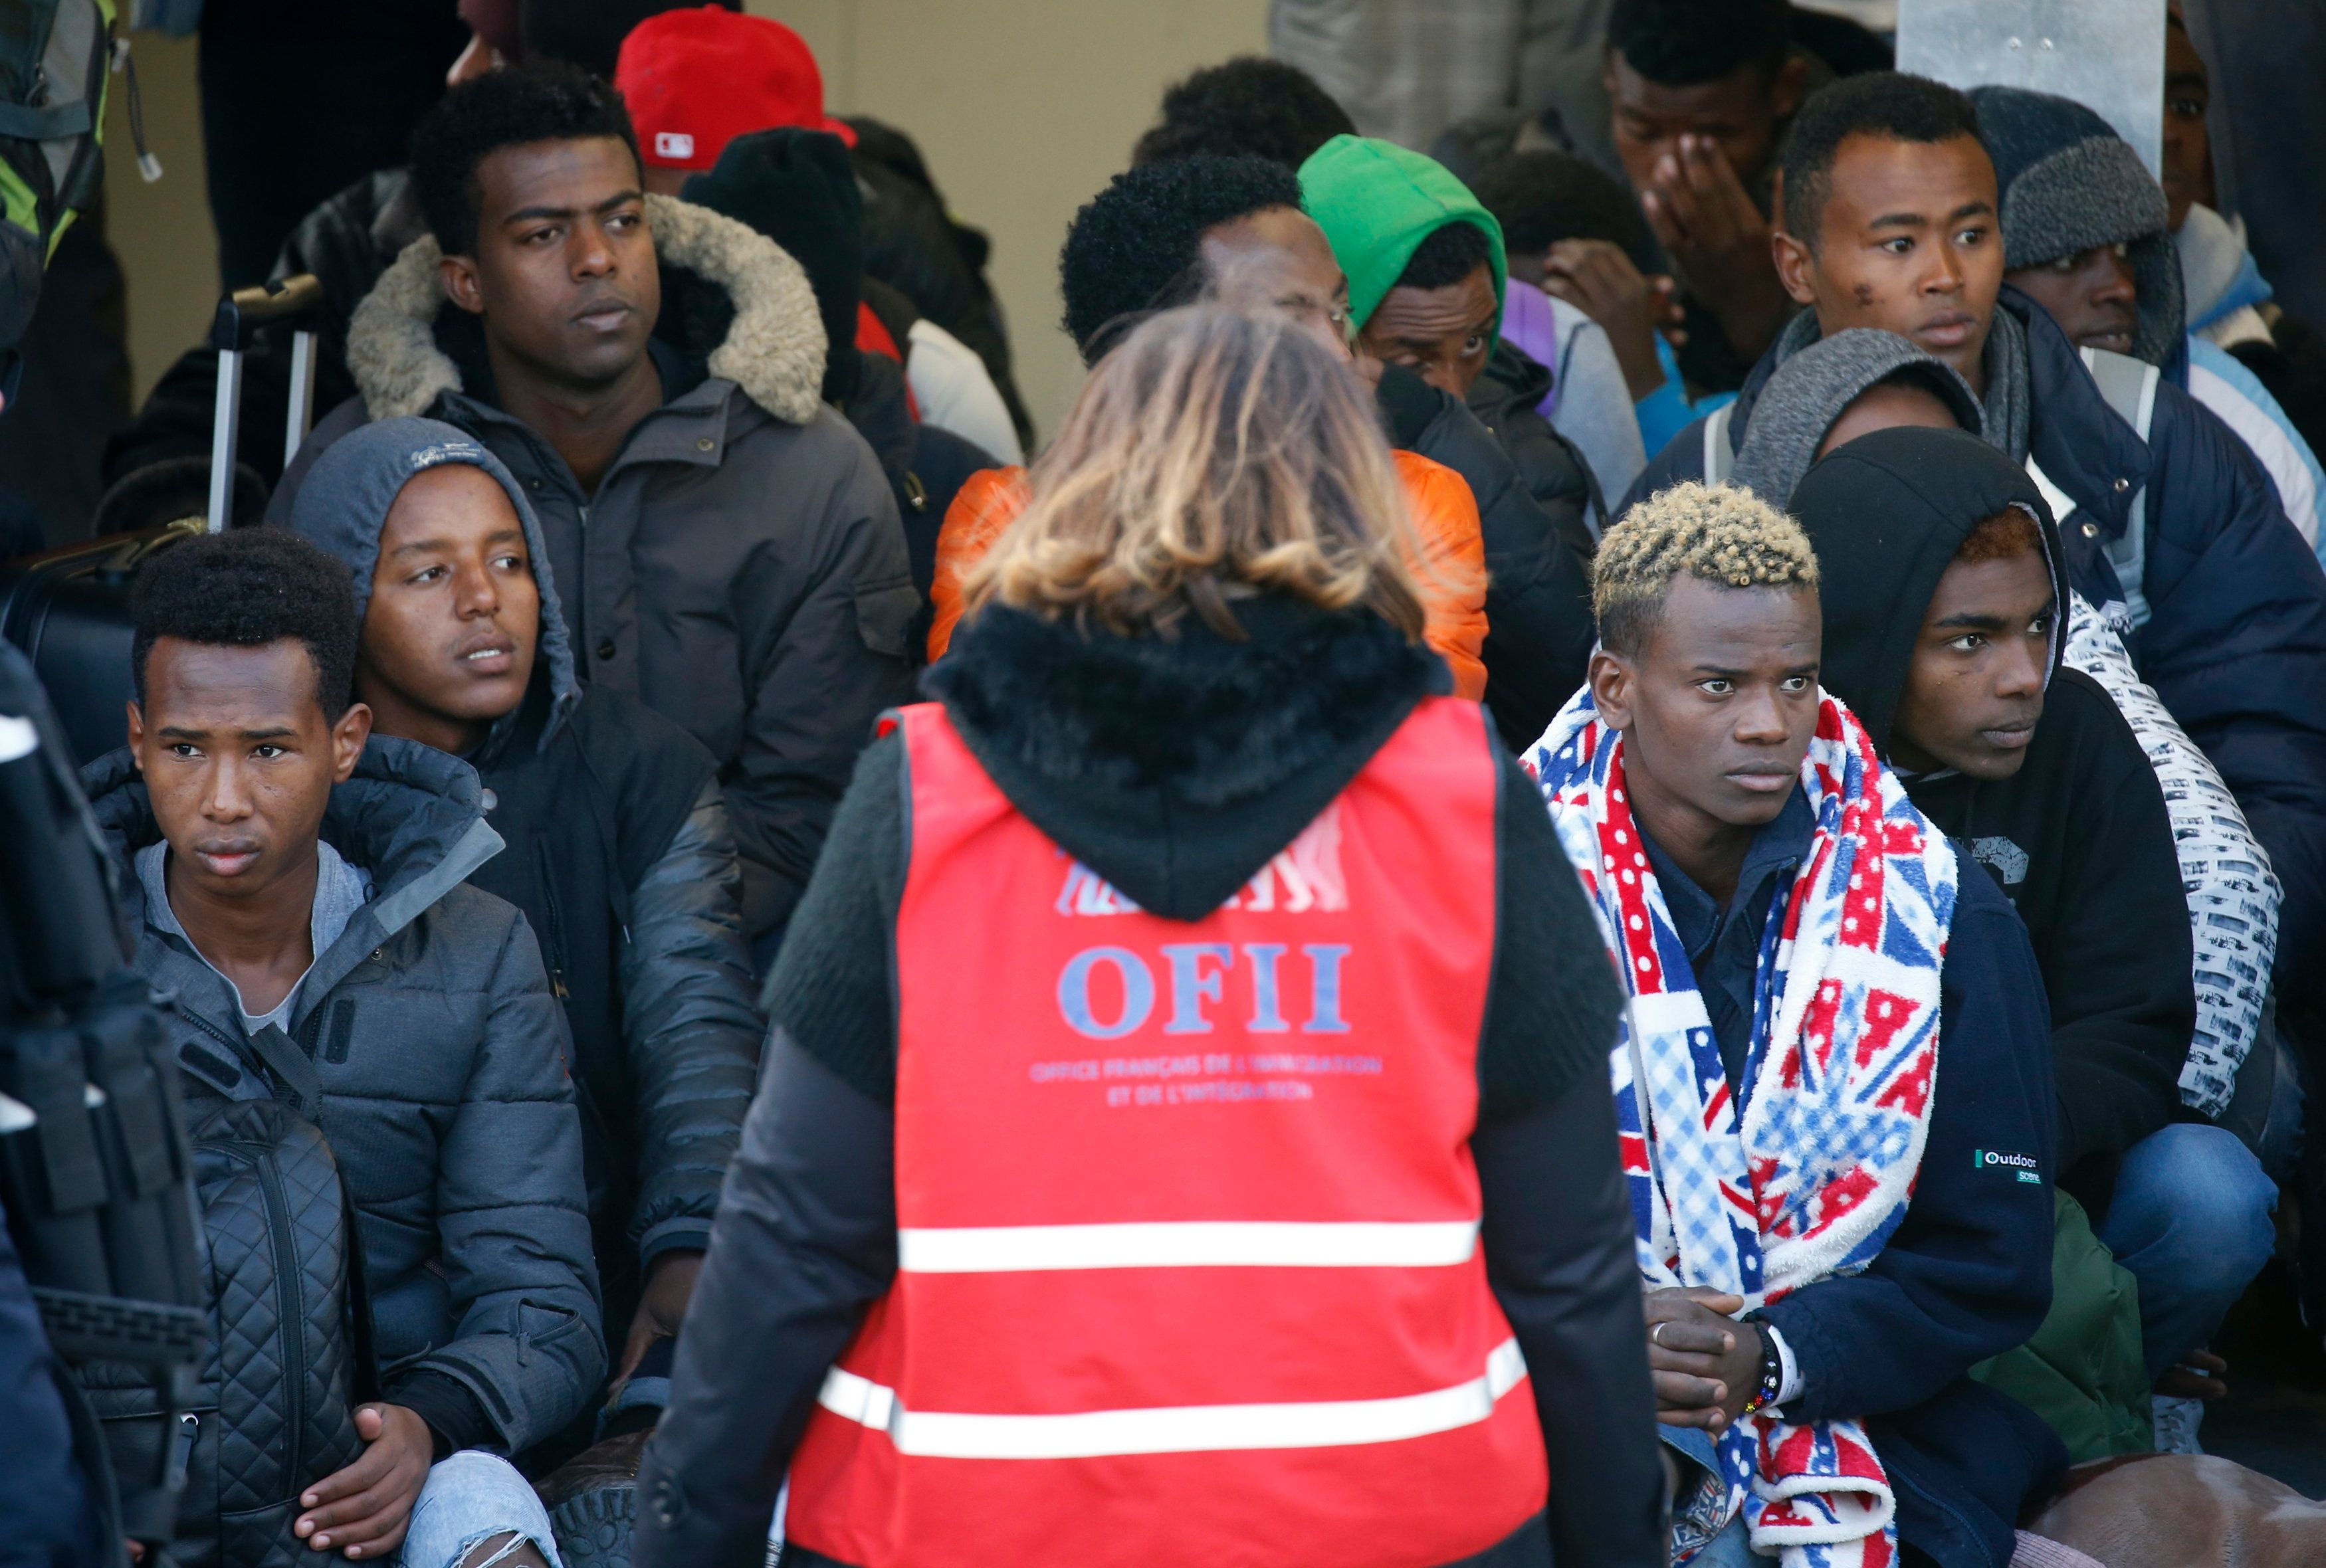 France Moves Calais Child Migrants As Row With Britain